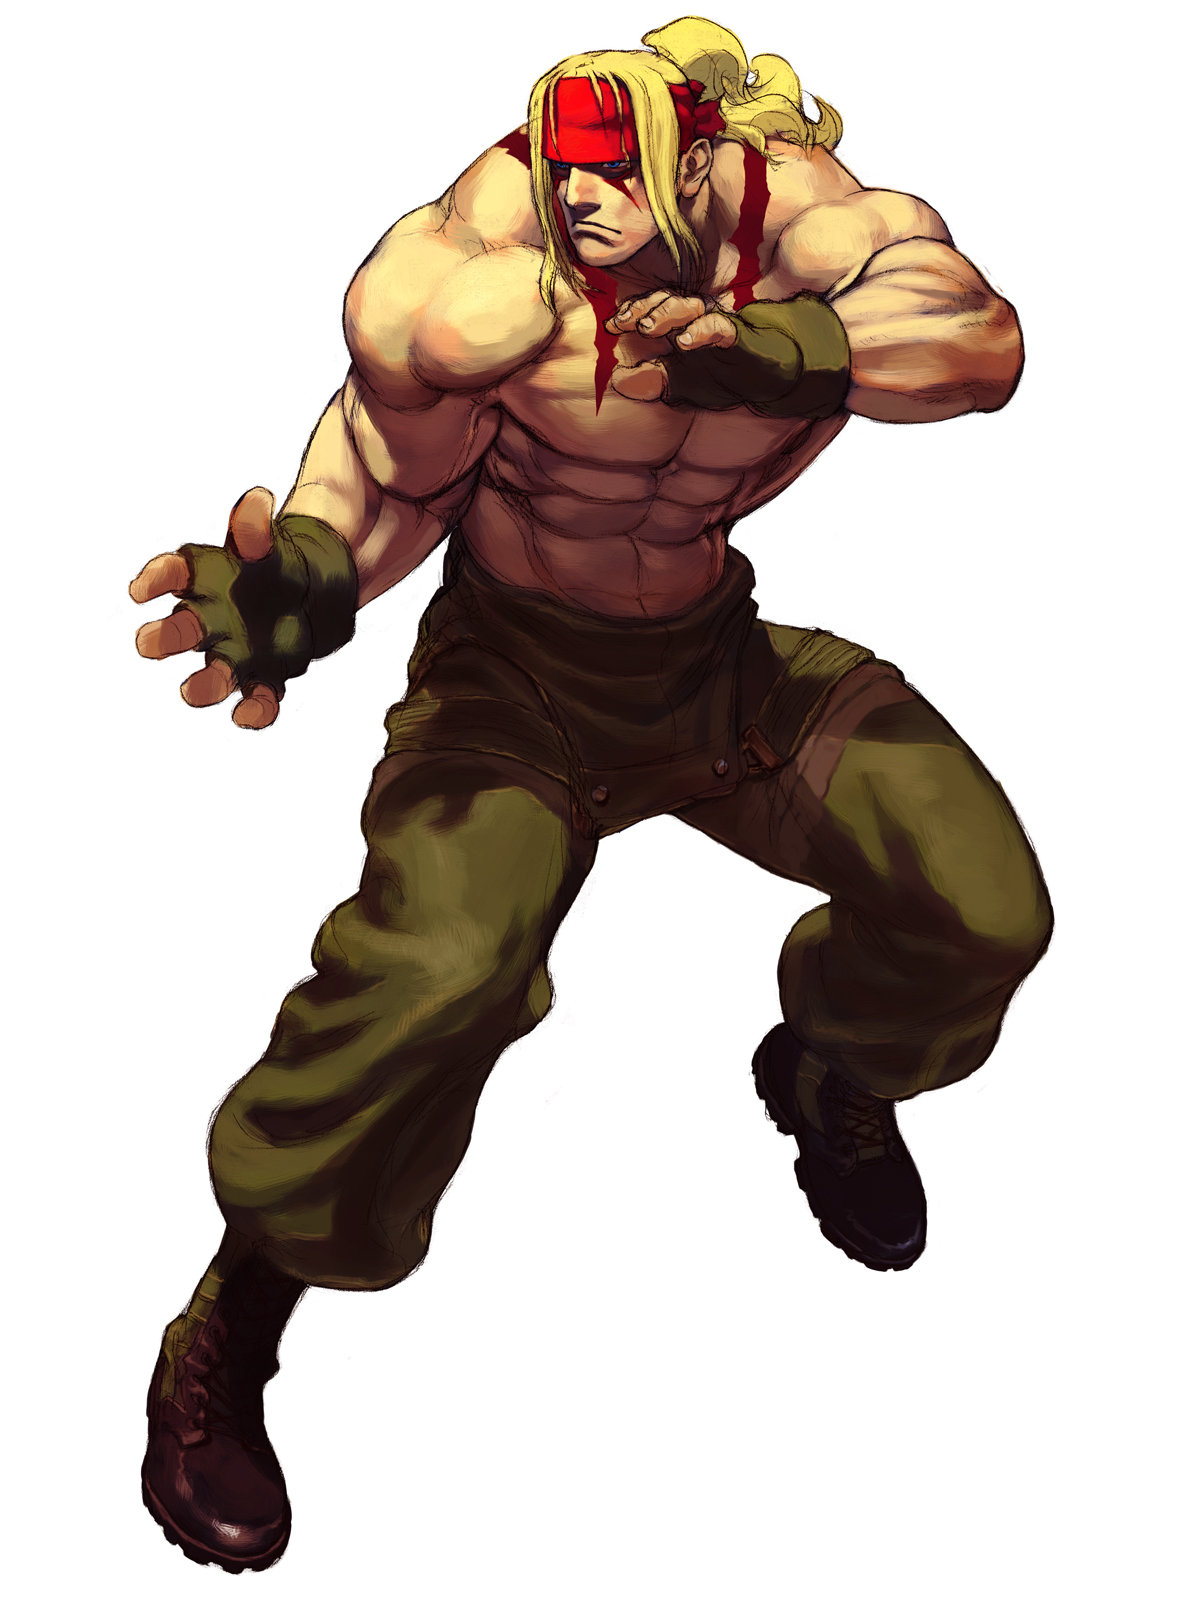 Street Fighter creator teases Alex for upcoming game at New York Comic Con